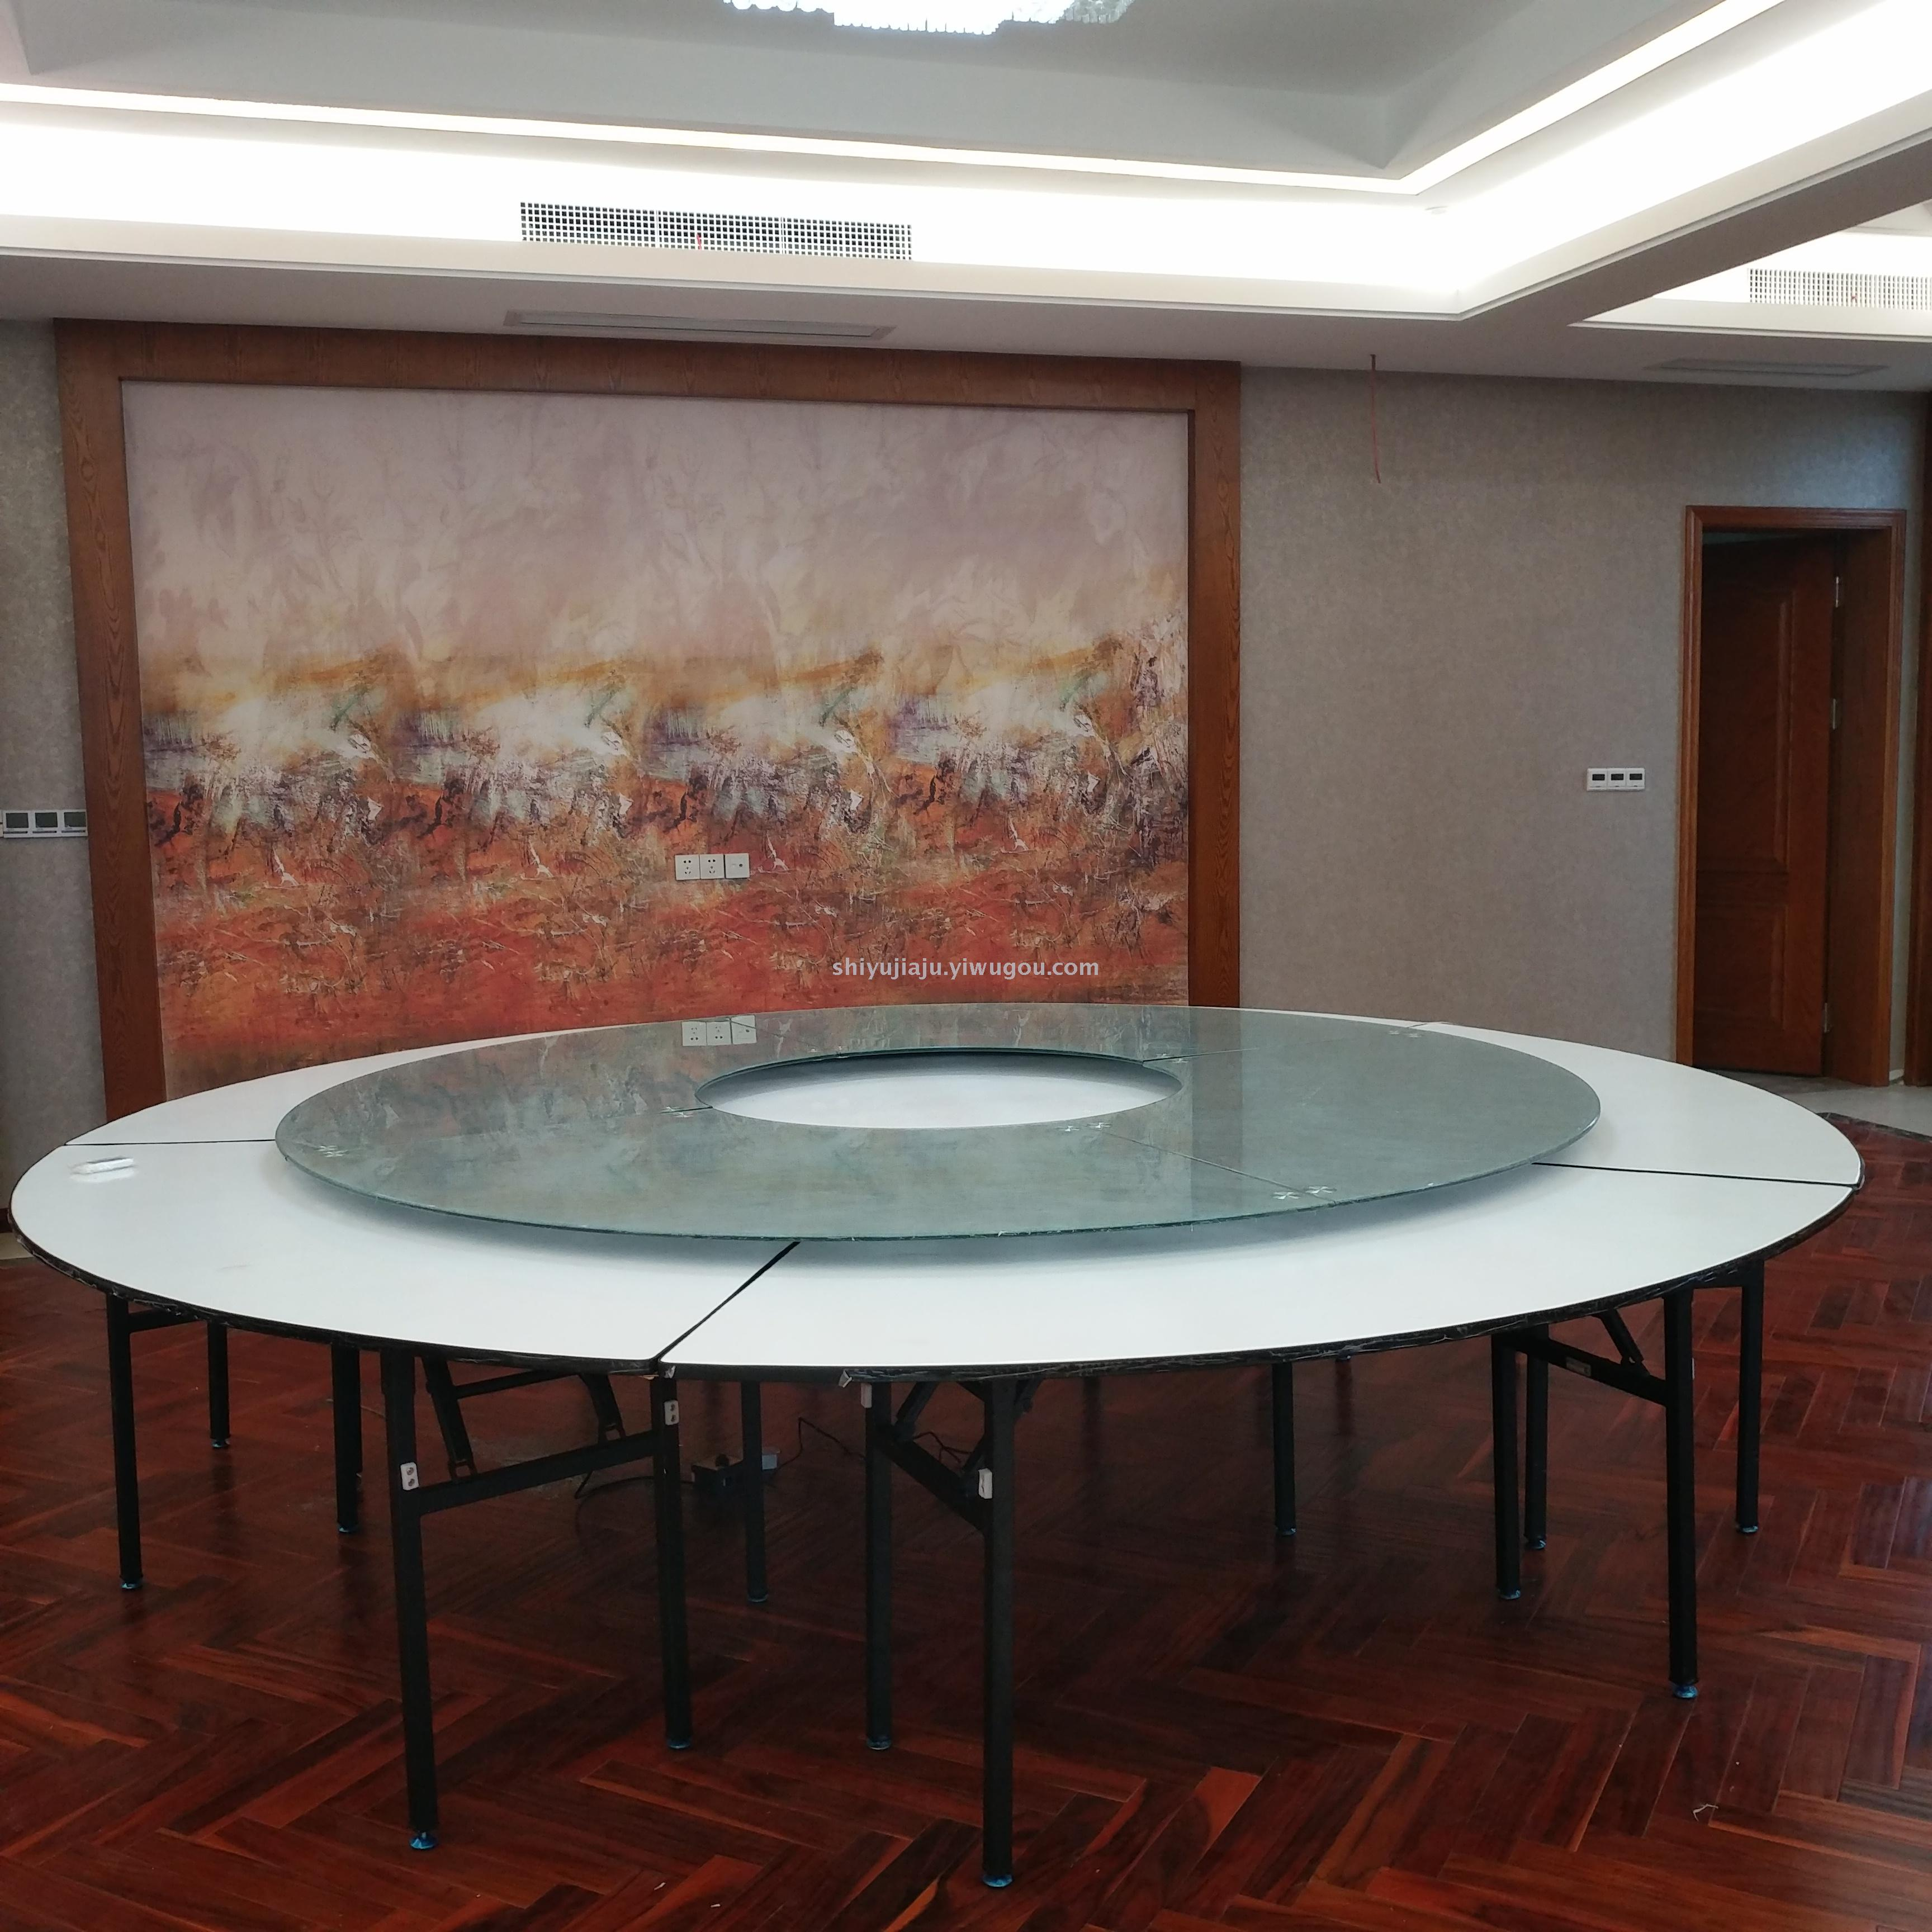 Hefei Hotel Box Dining Table And Chair Club Luxurious Electric Table Villa  Remote Control Electric Revolving